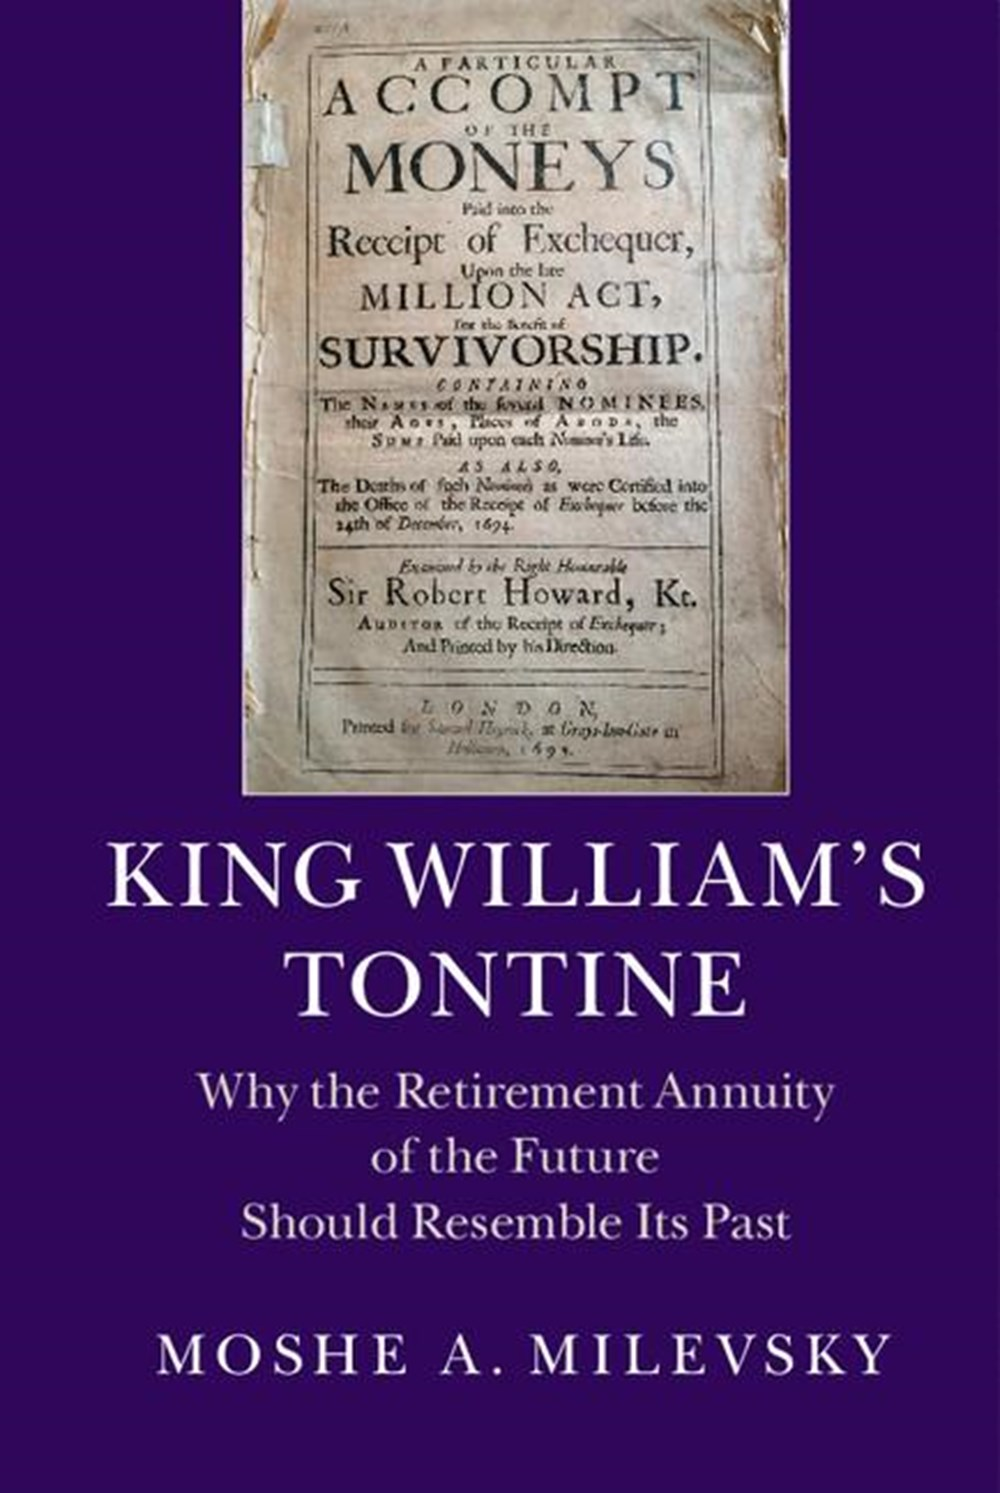 King William's Tontine